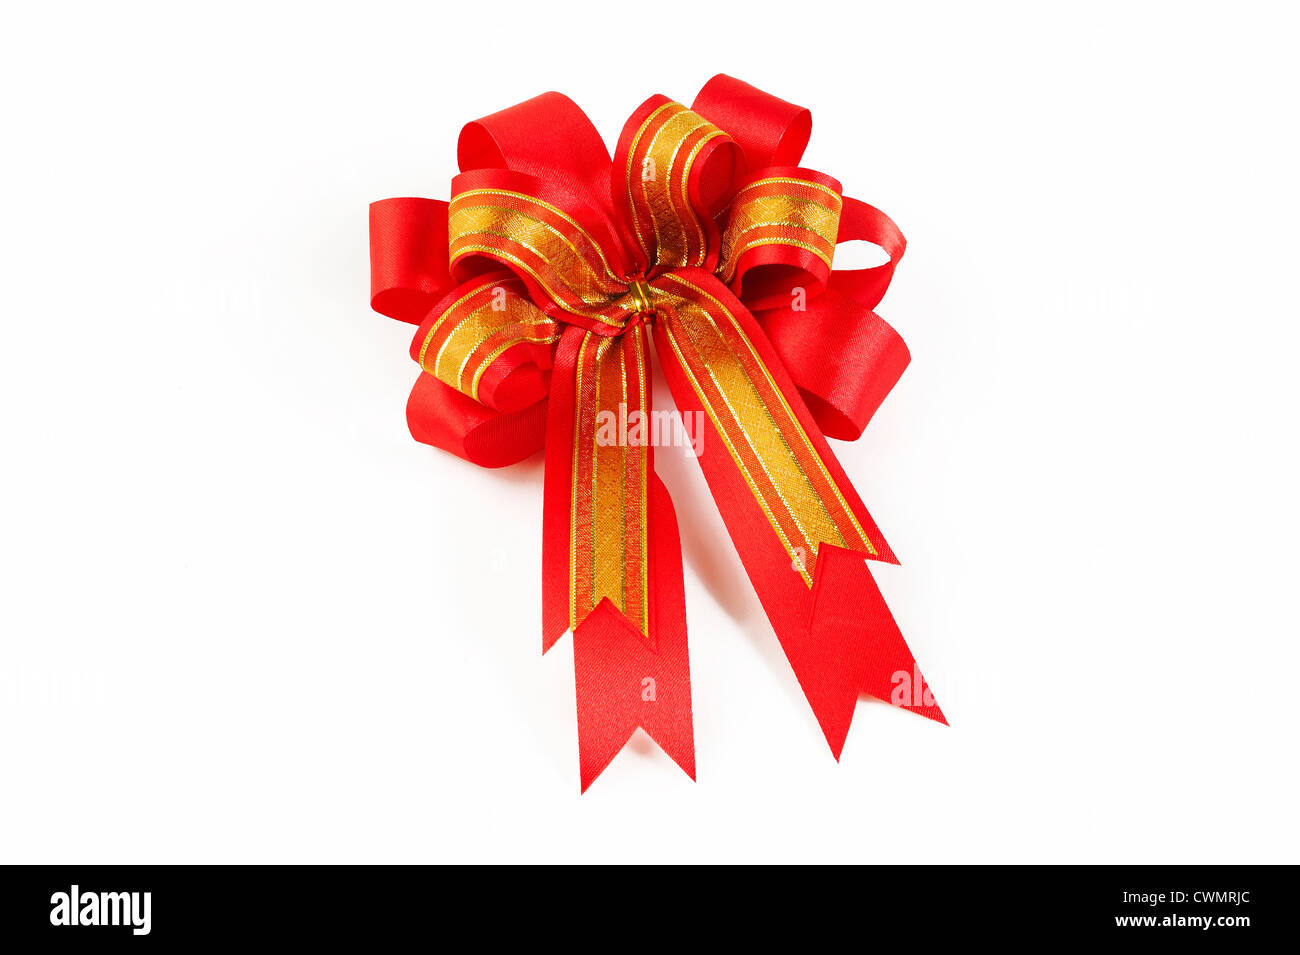 red bow ribbon - Stock Image